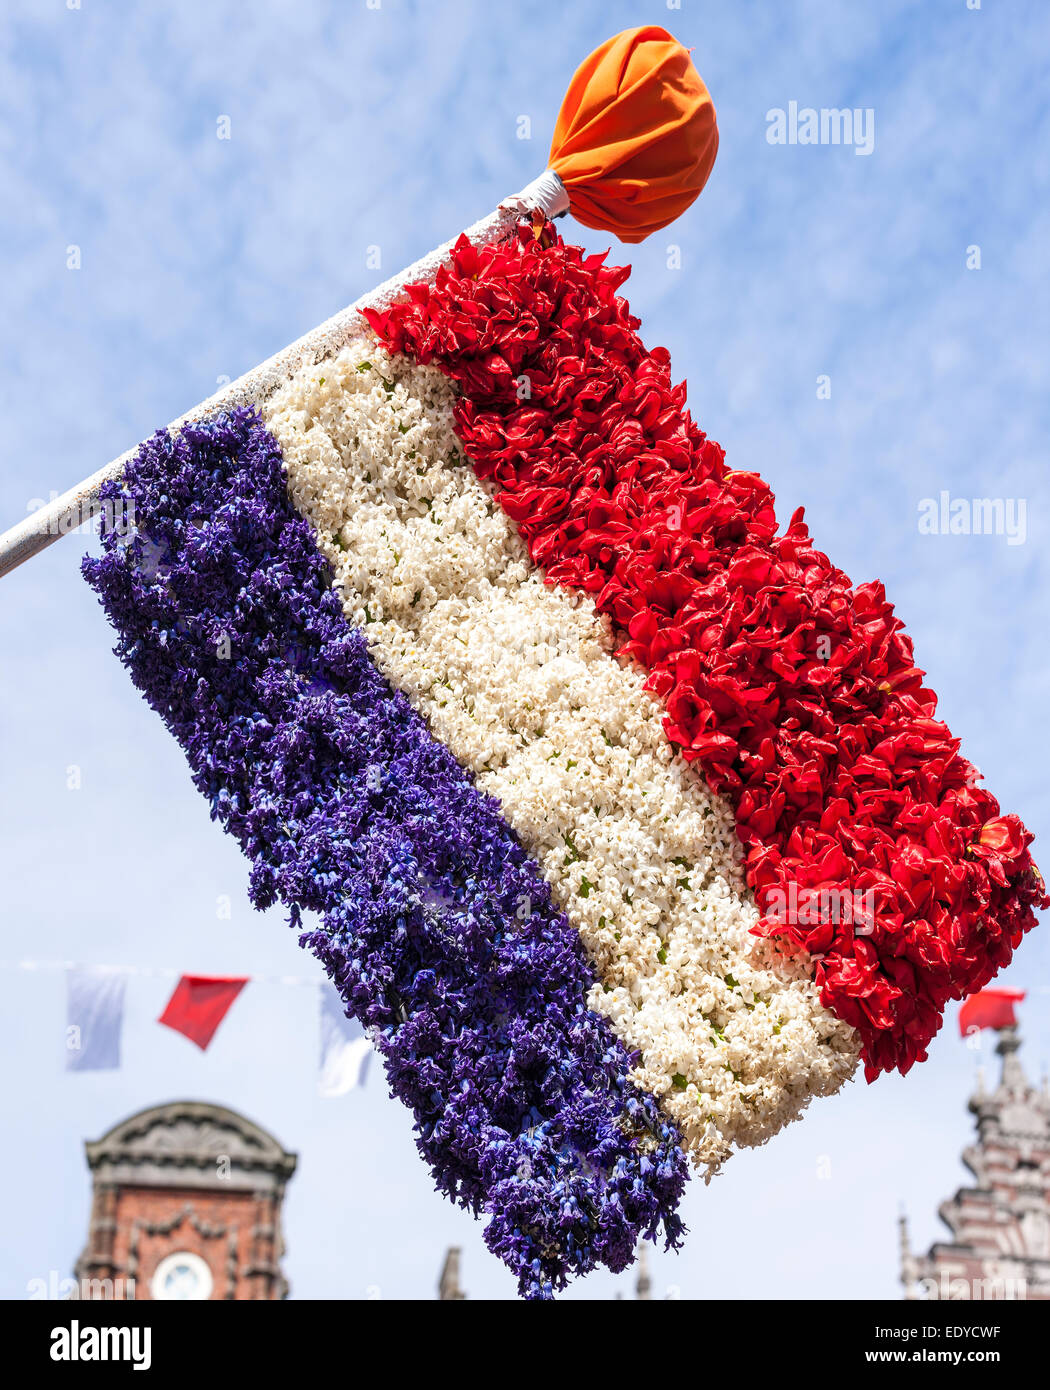 Flag of the netherlands made from flowers at dutch flower parade flag of the netherlands made from flowers at dutch flower parade festival in haarlem holland mightylinksfo